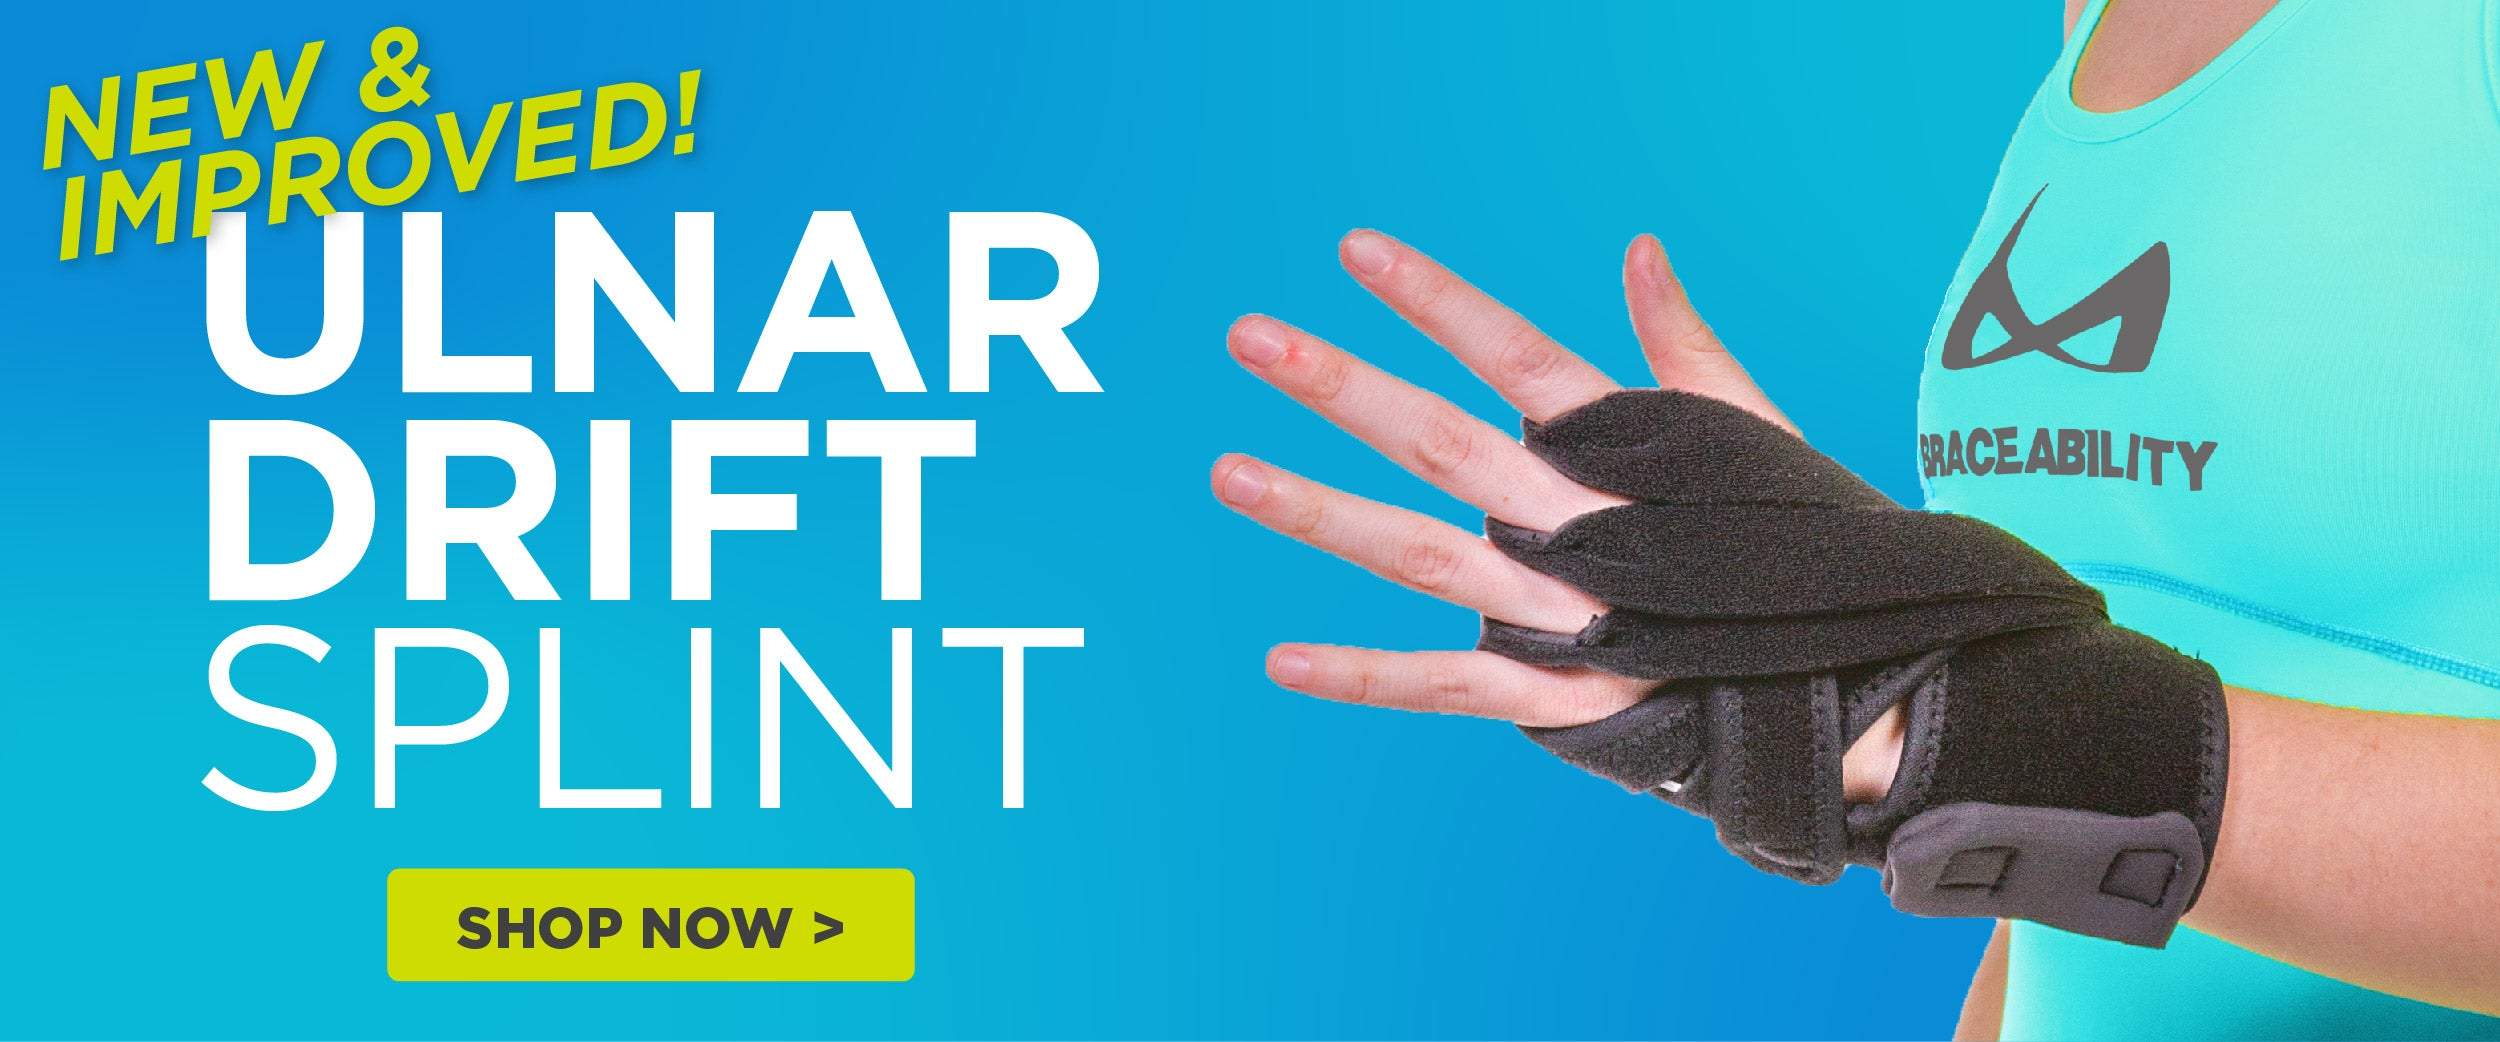 Follow this link to shop our new and improved ulnar drift splint for rheumatoid arthritis